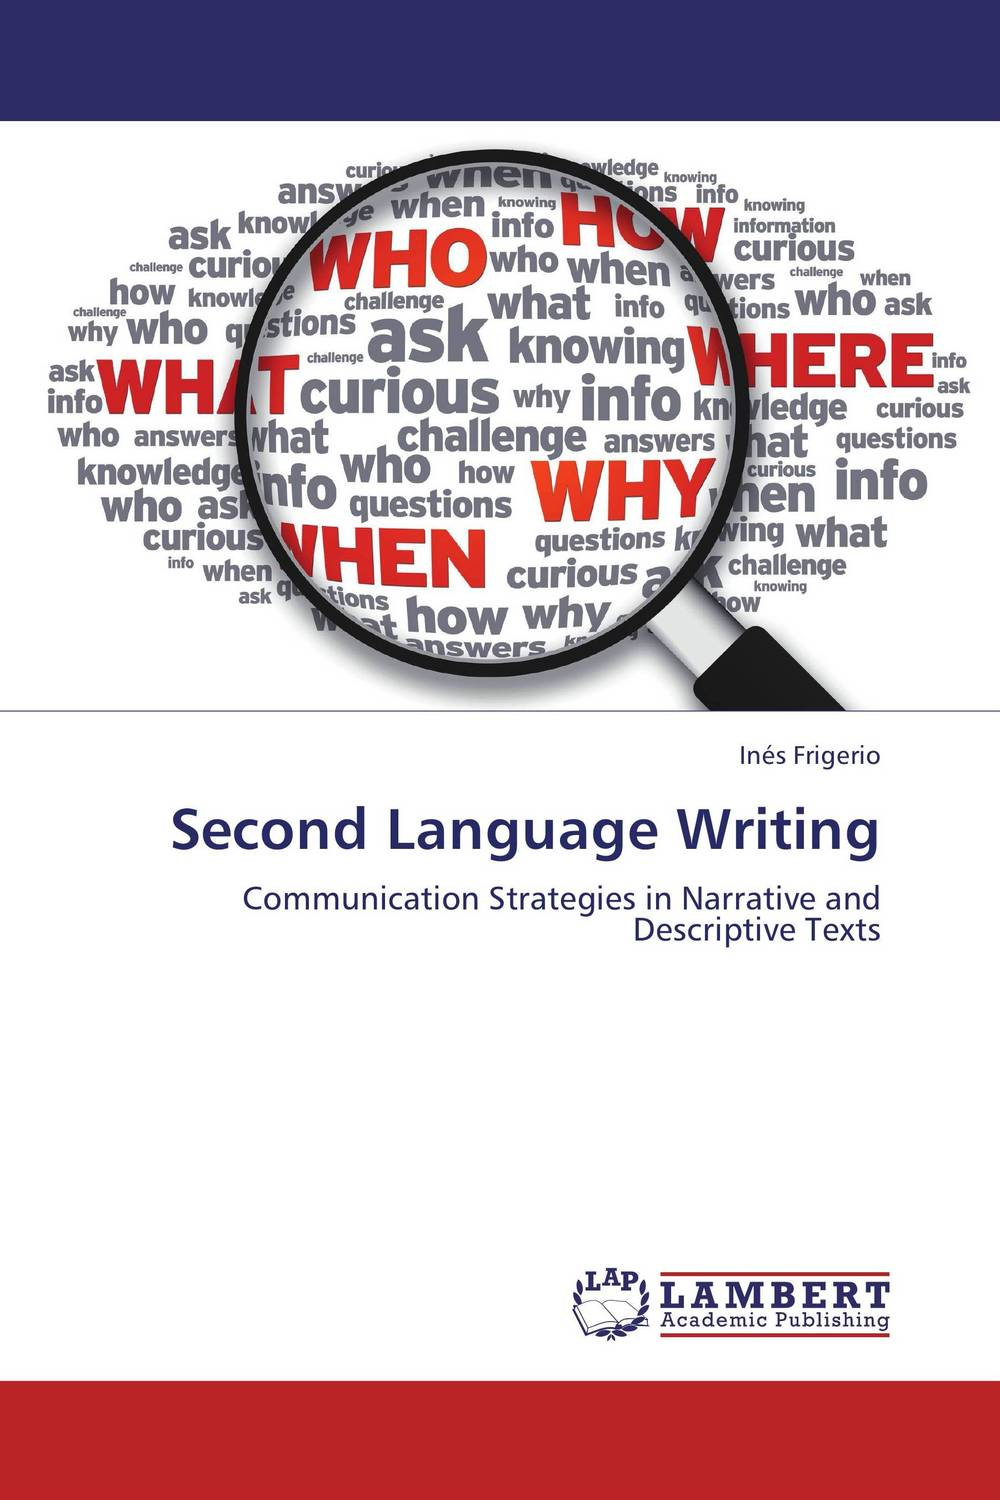 Second Language Writing language change and lexical variation in youth language